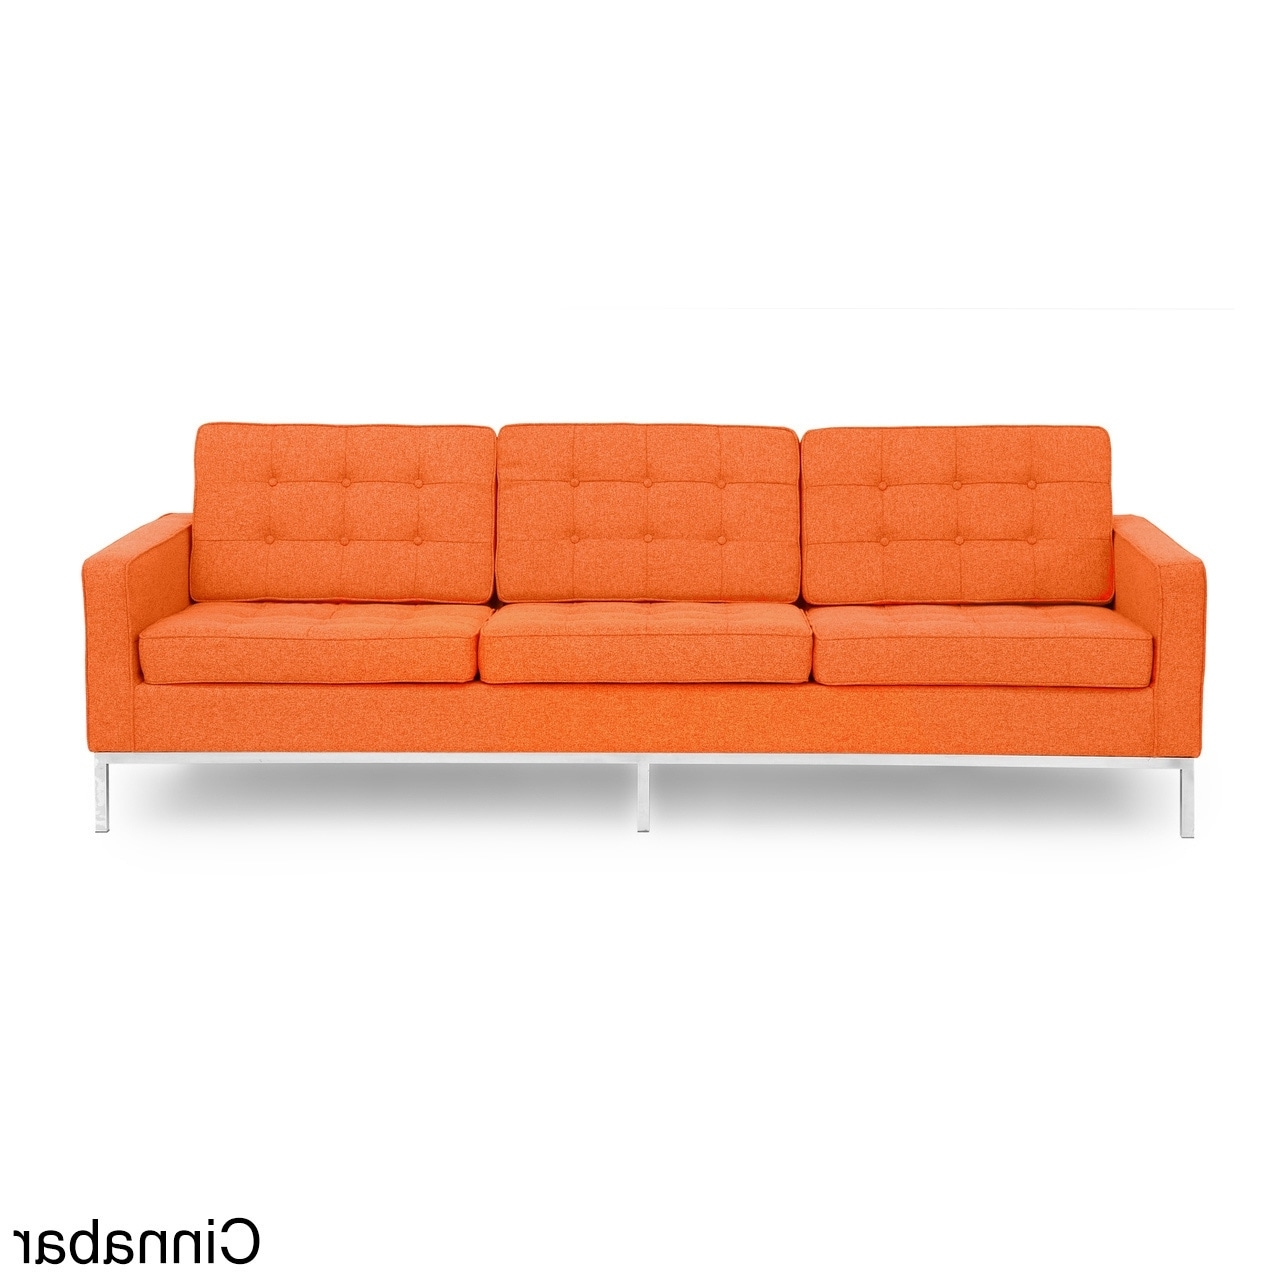 Kardiel Florence Knoll Style Sofa 3 Seat, Premium Fabric Intended For Preferred Florence Knoll Style Sofas (View 11 of 20)